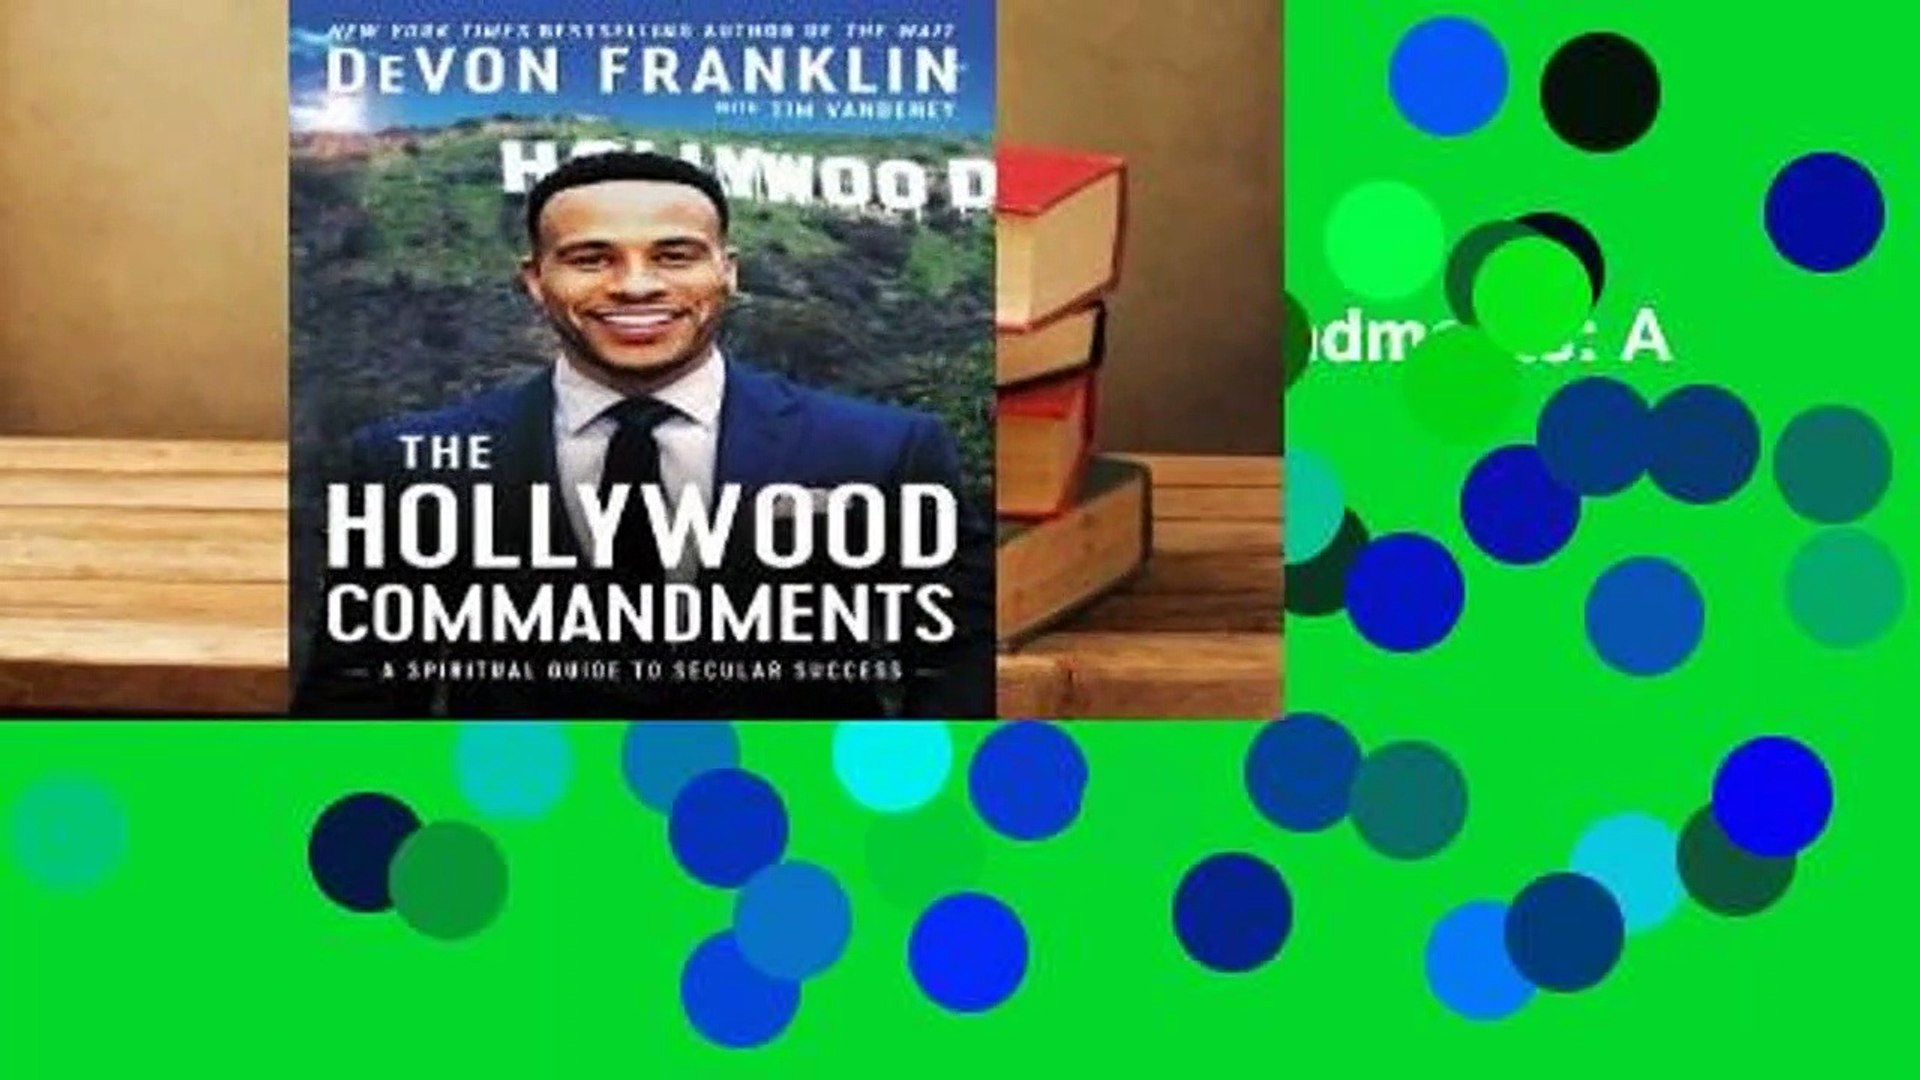 Full E-book The Hollywood Commandments: A Spiritual Guide to Secular Success  For Free